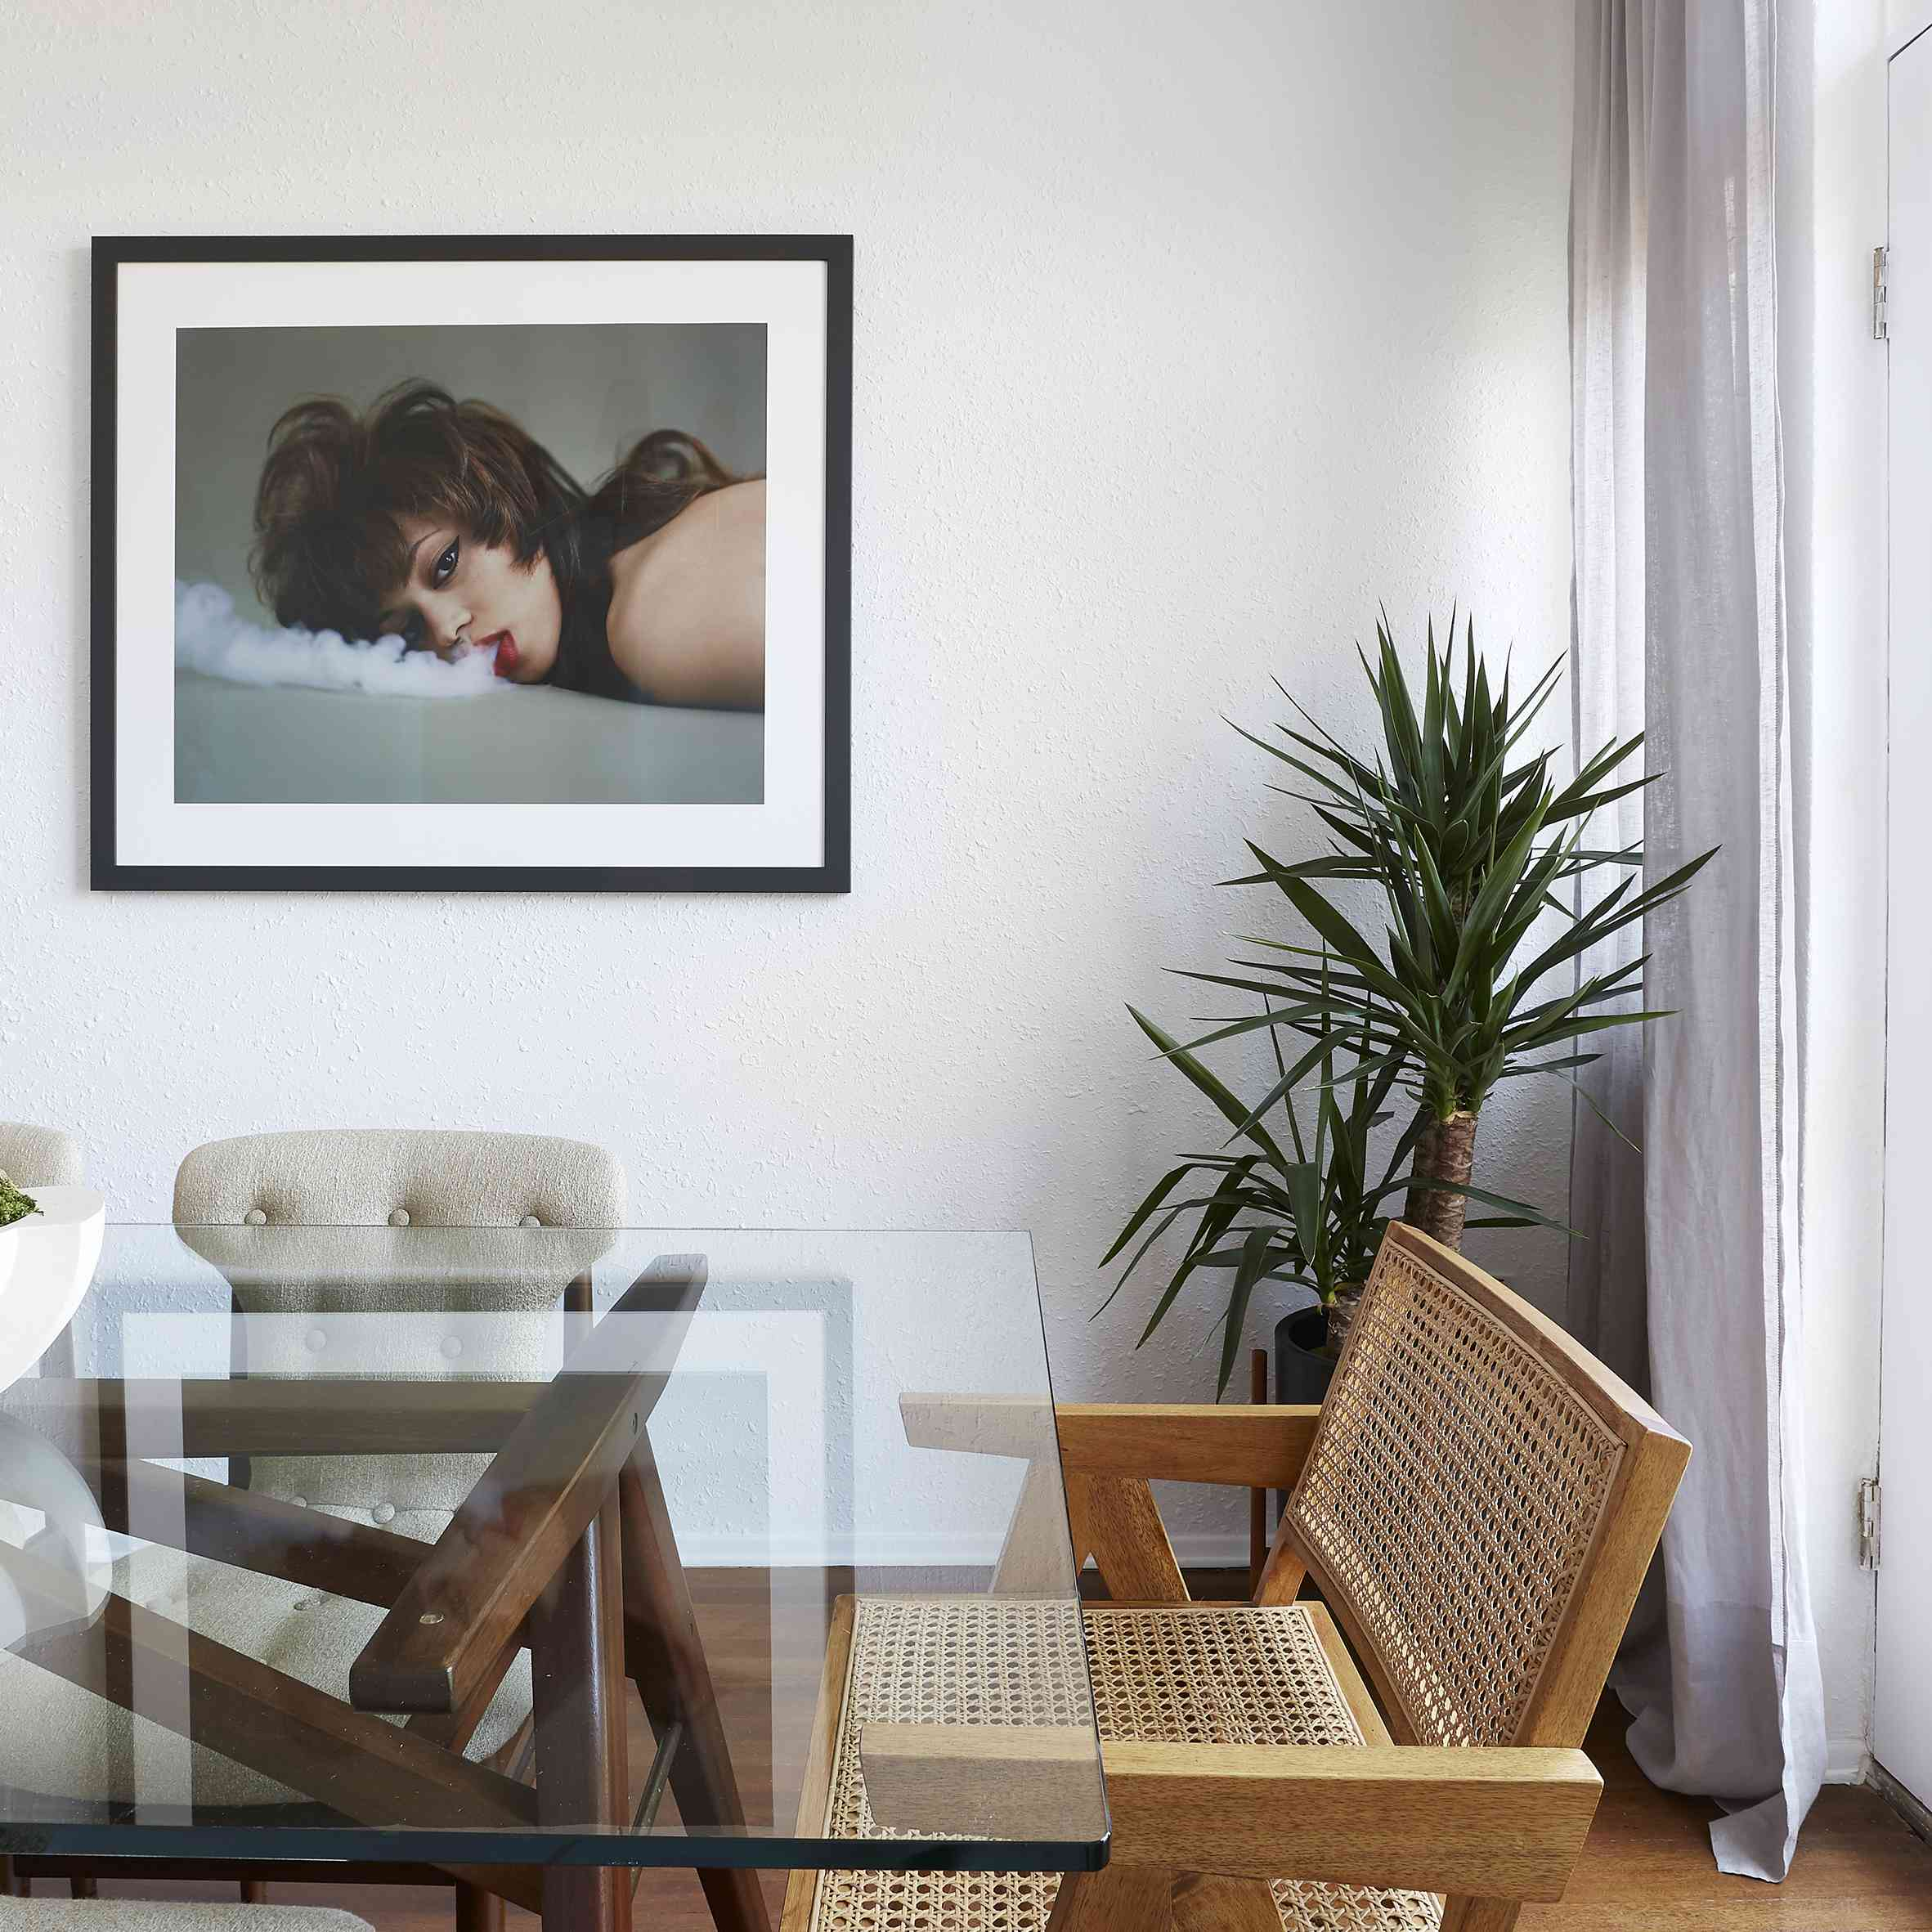 dining room with edgy framed photograph